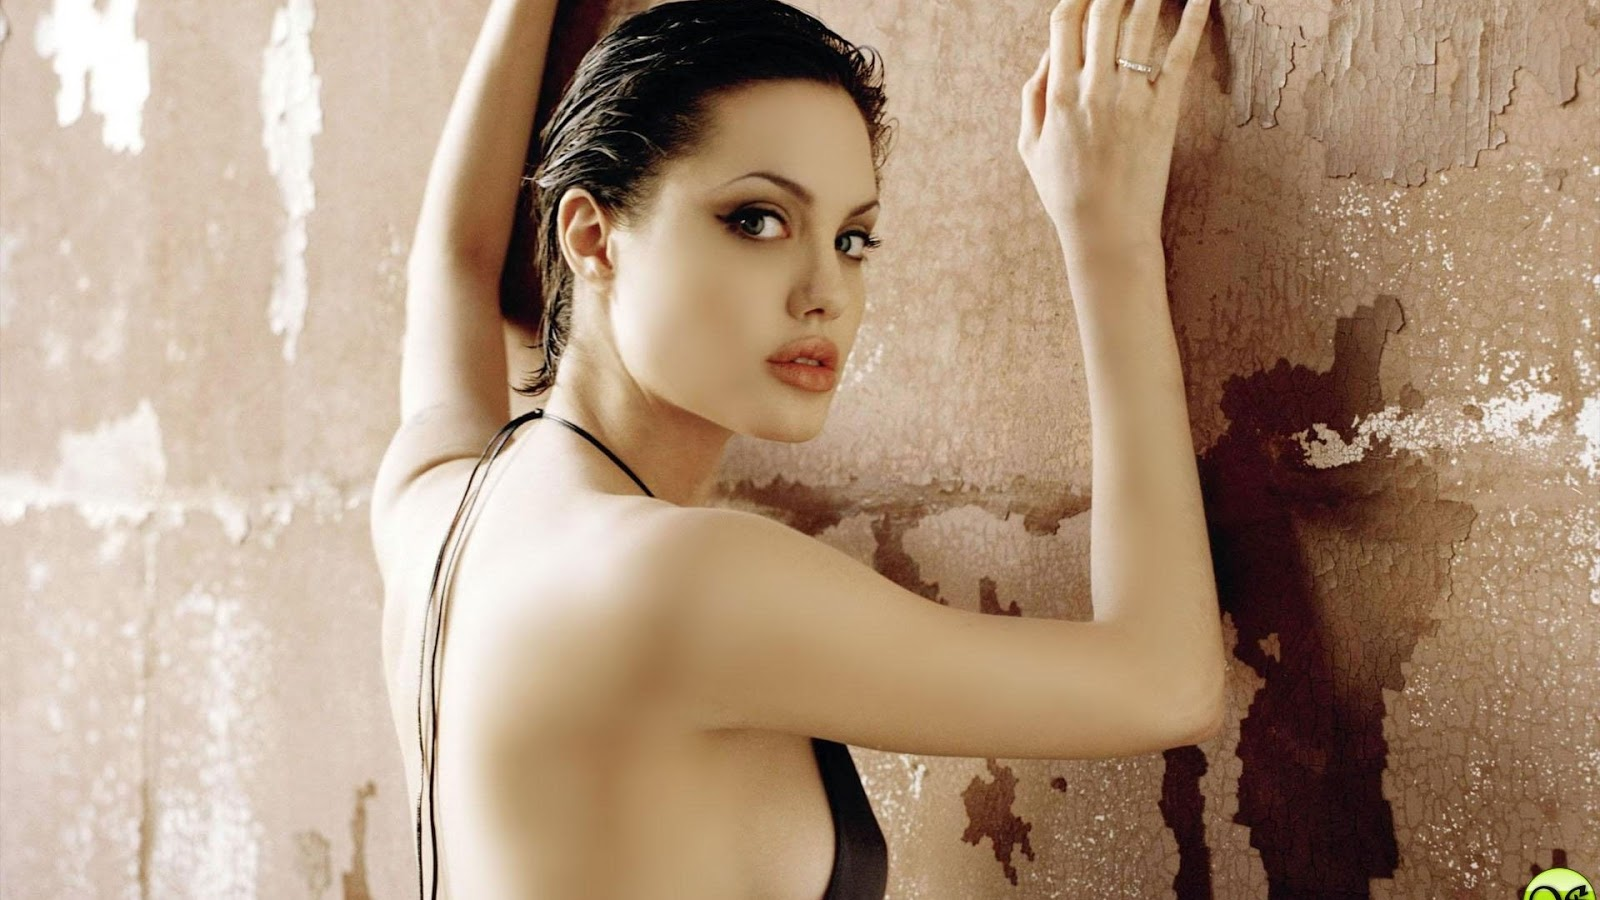 http://4.bp.blogspot.com/-MRNoSeTI2GE/TwRmD9YgmiI/AAAAAAAAD-Q/ykpqWiMHaC8/s1600/Angelina-Jolie--hot-sexy-actress-hollywood-star-pictures-wallpapers-widescreen-supermodel-photo-gallery-widescreen-wallpaper-latest-wallpapers-1920x1080.jpg